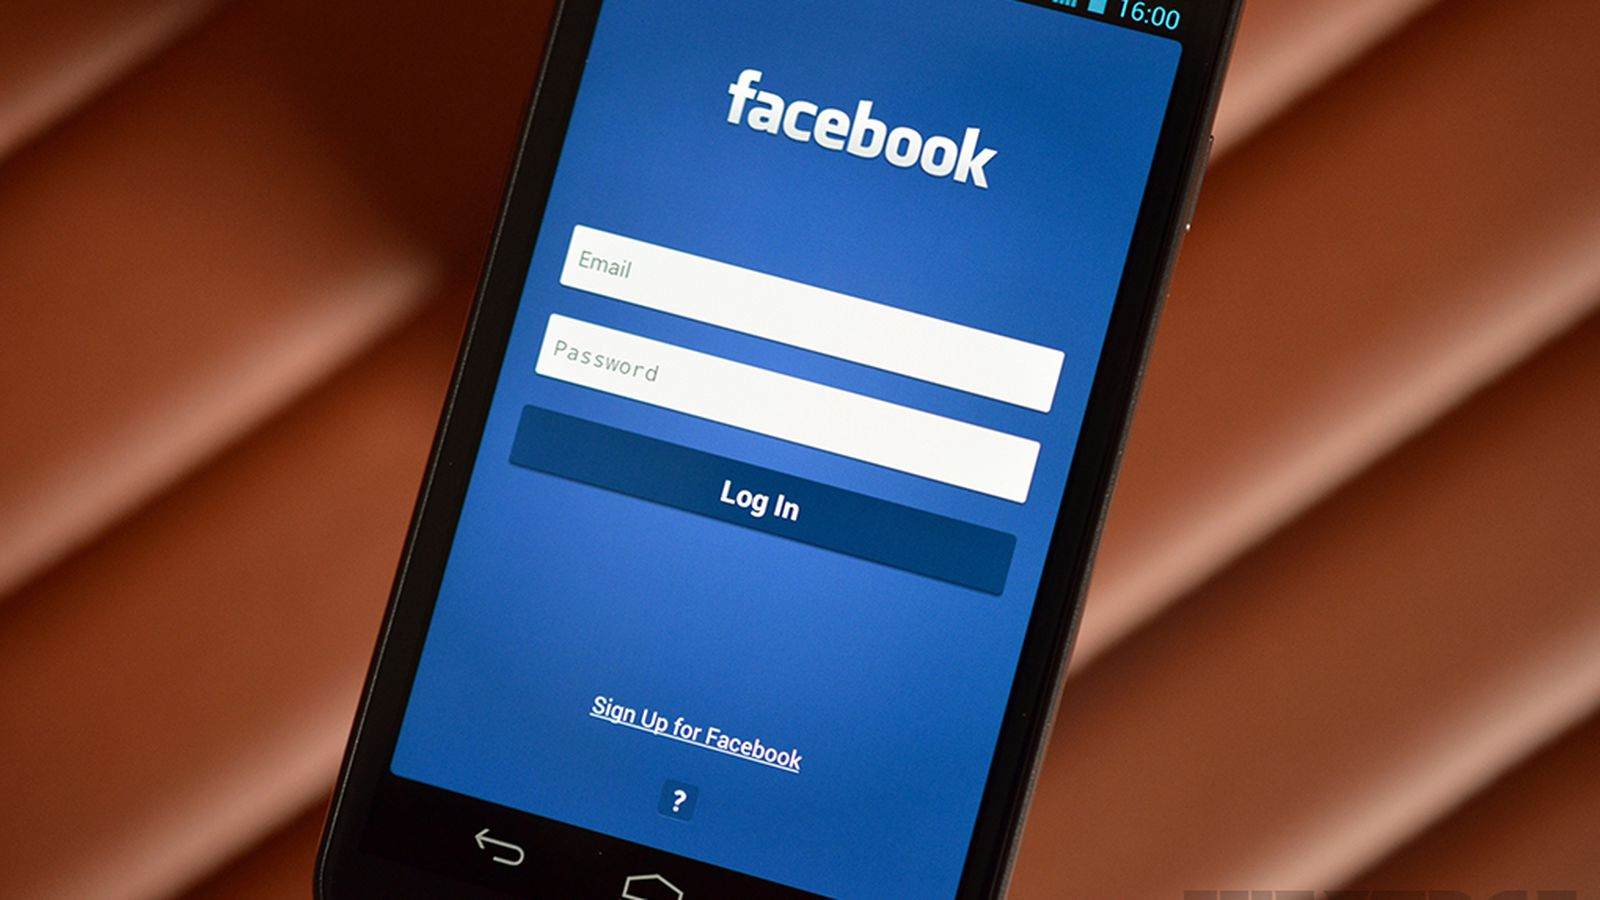 Facebook To Show Ads Based On Your Browsing History, But Let You Change  Them The How